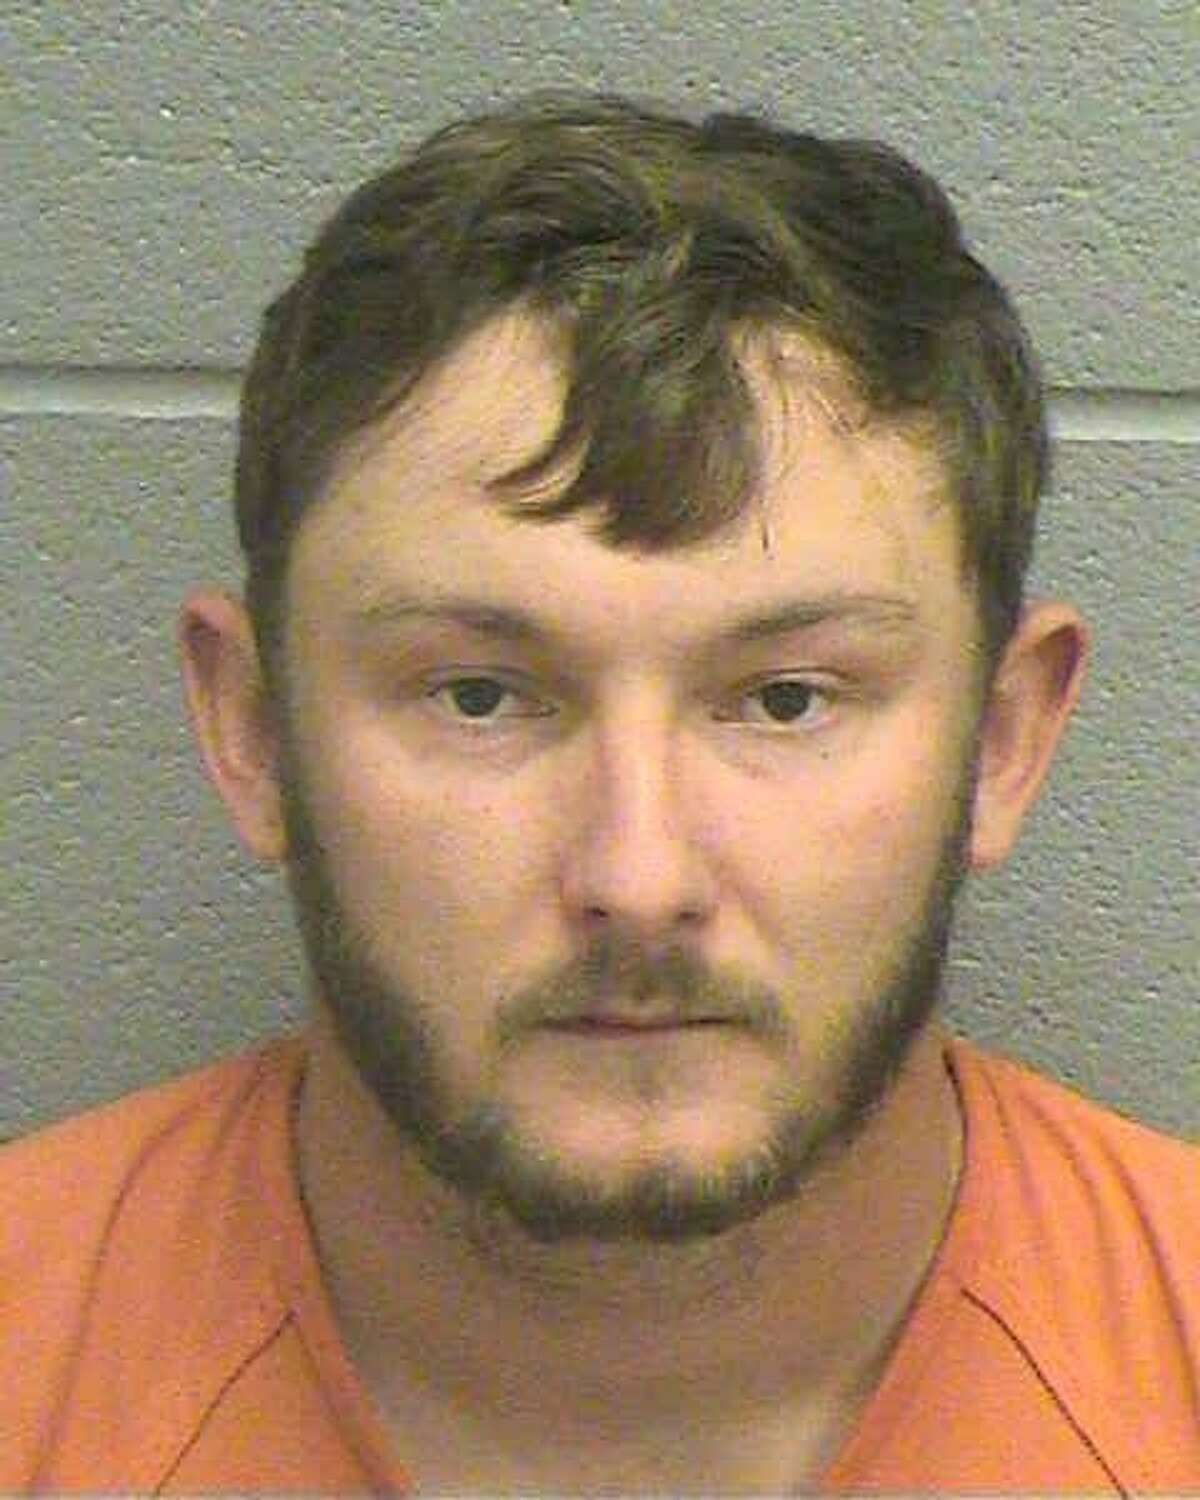 Shane William Sawyer, a 22-year-old teacher and coach at Alamo Junior High School, has been charged with online solicitation of a minor after admitting to sending inappropriate texts to a female student.